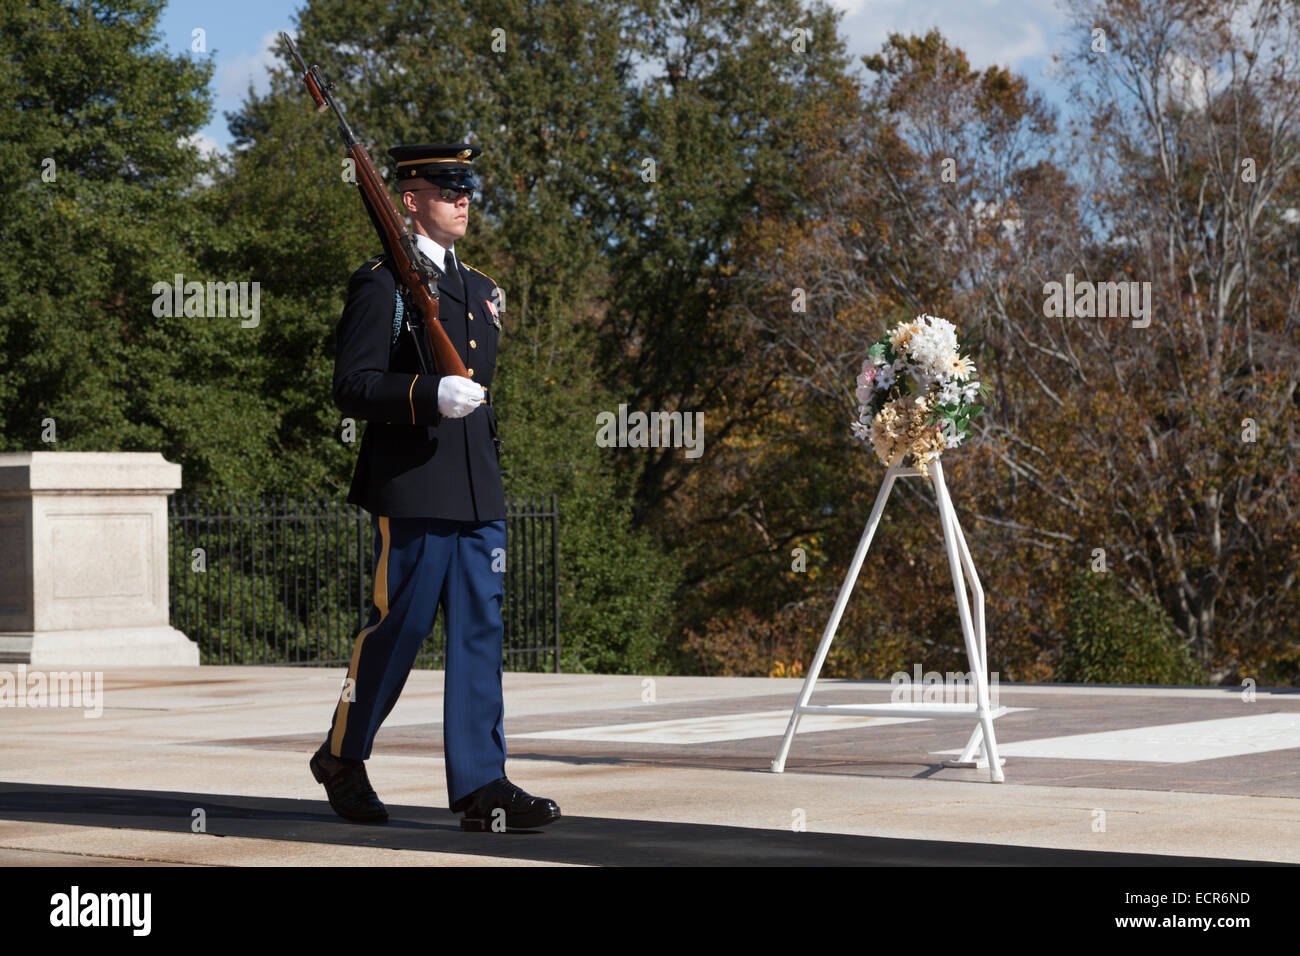 Tomb of the Unknown Soldier, Arlington National Cemetery, Virginia - Stock Image